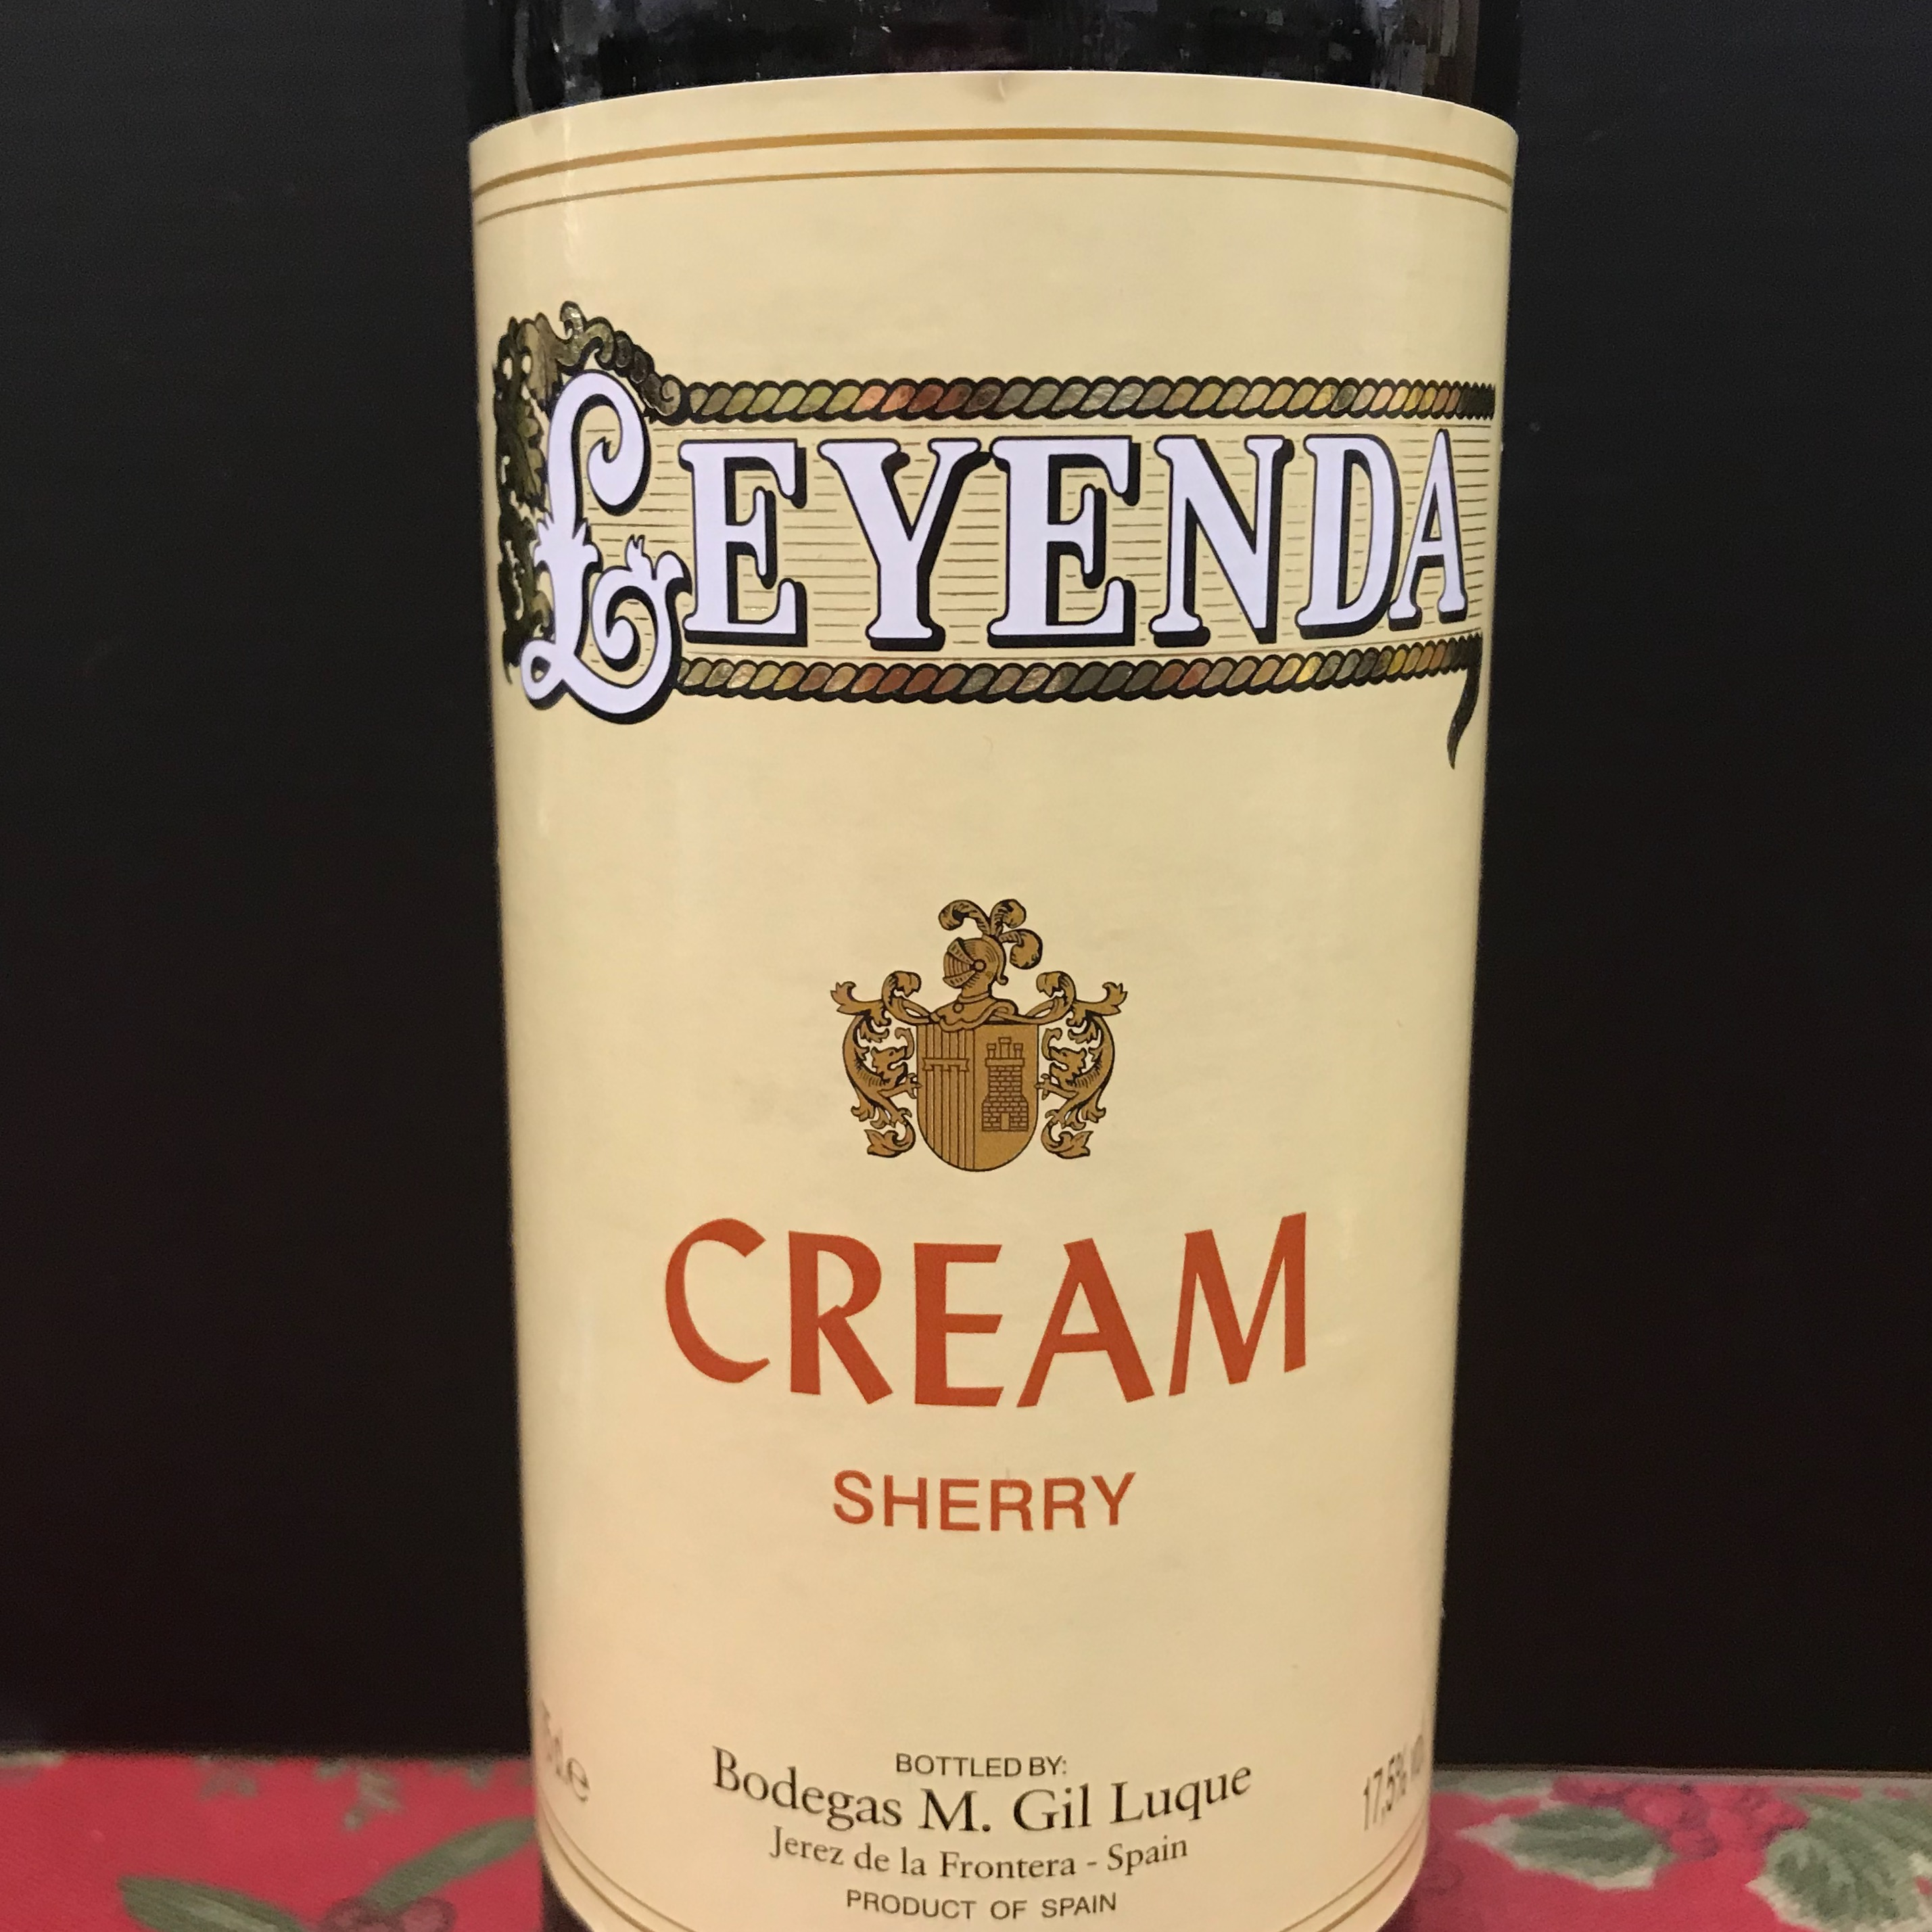 Leyenda Cream Sherry